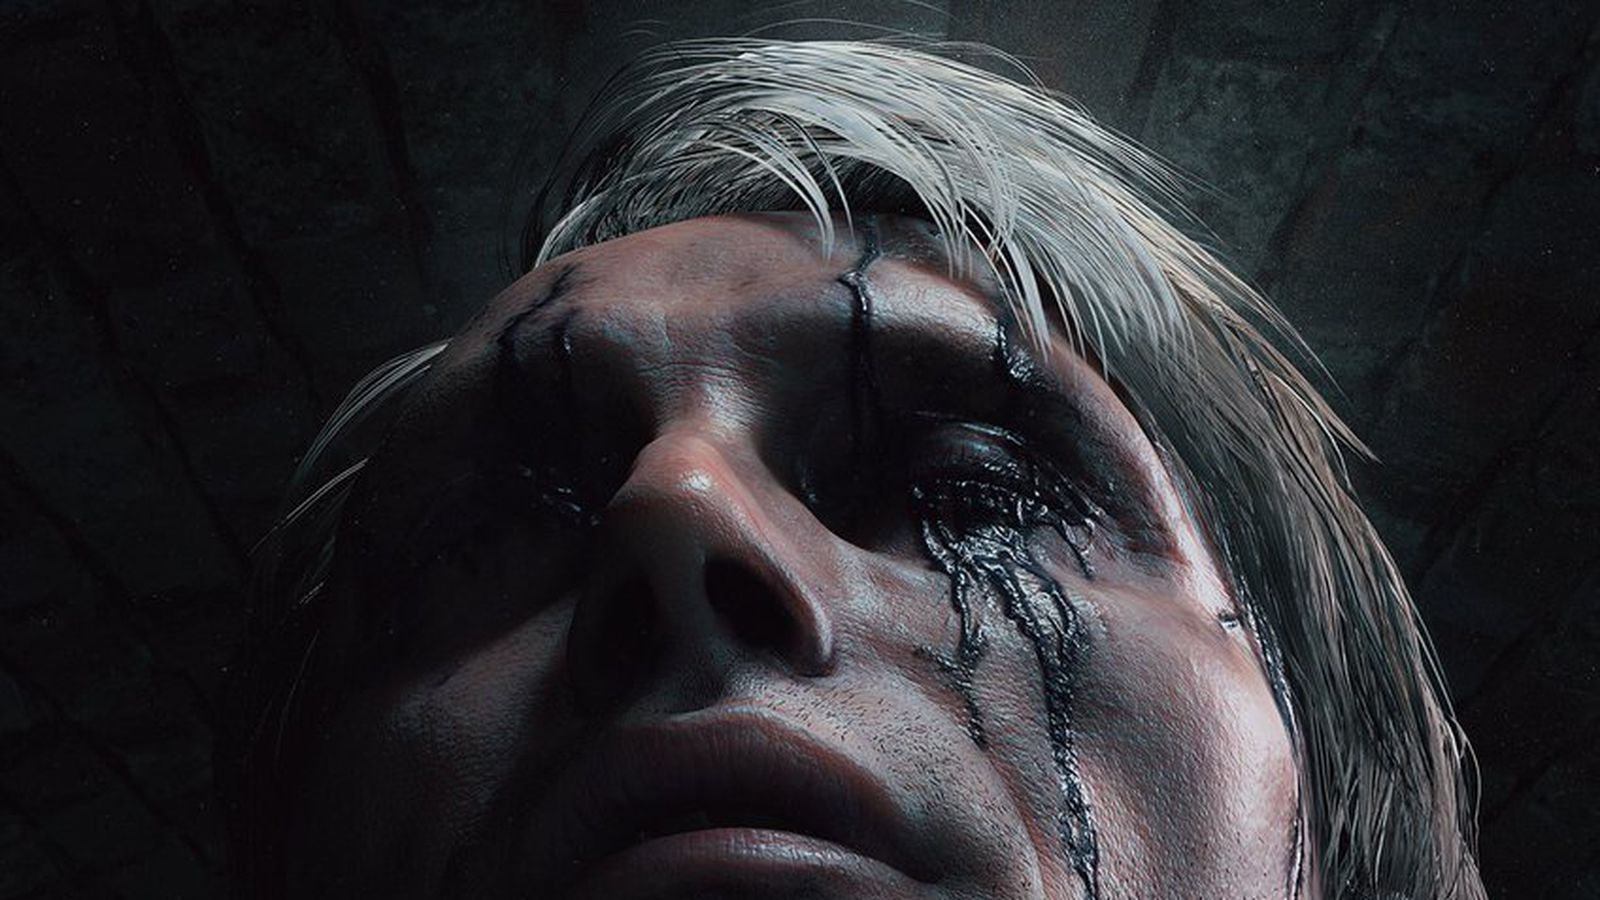 Death Stranding remains a mystery, but that won't stop fans from theorizing